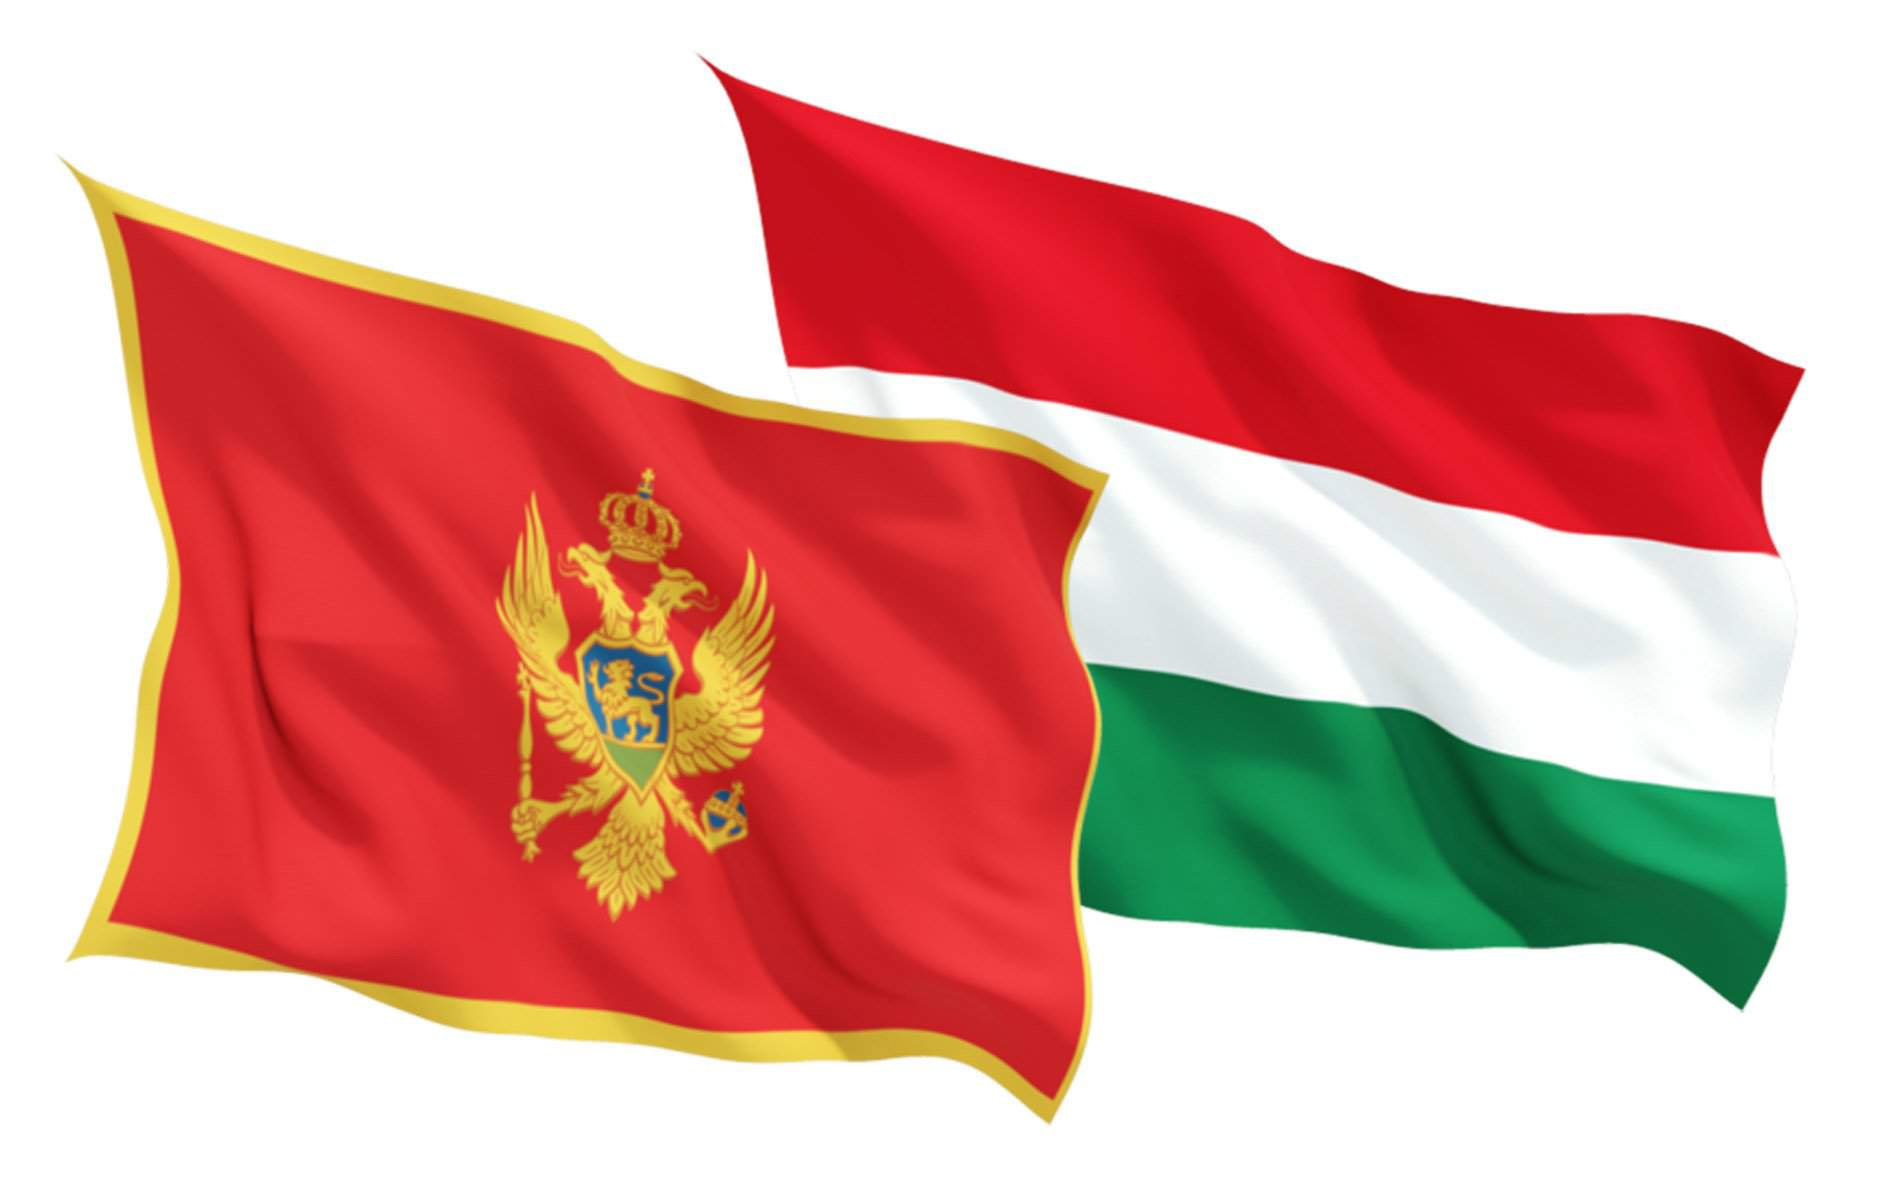 Hungarian FM urges Brussels to speed up Montenegro accession talk